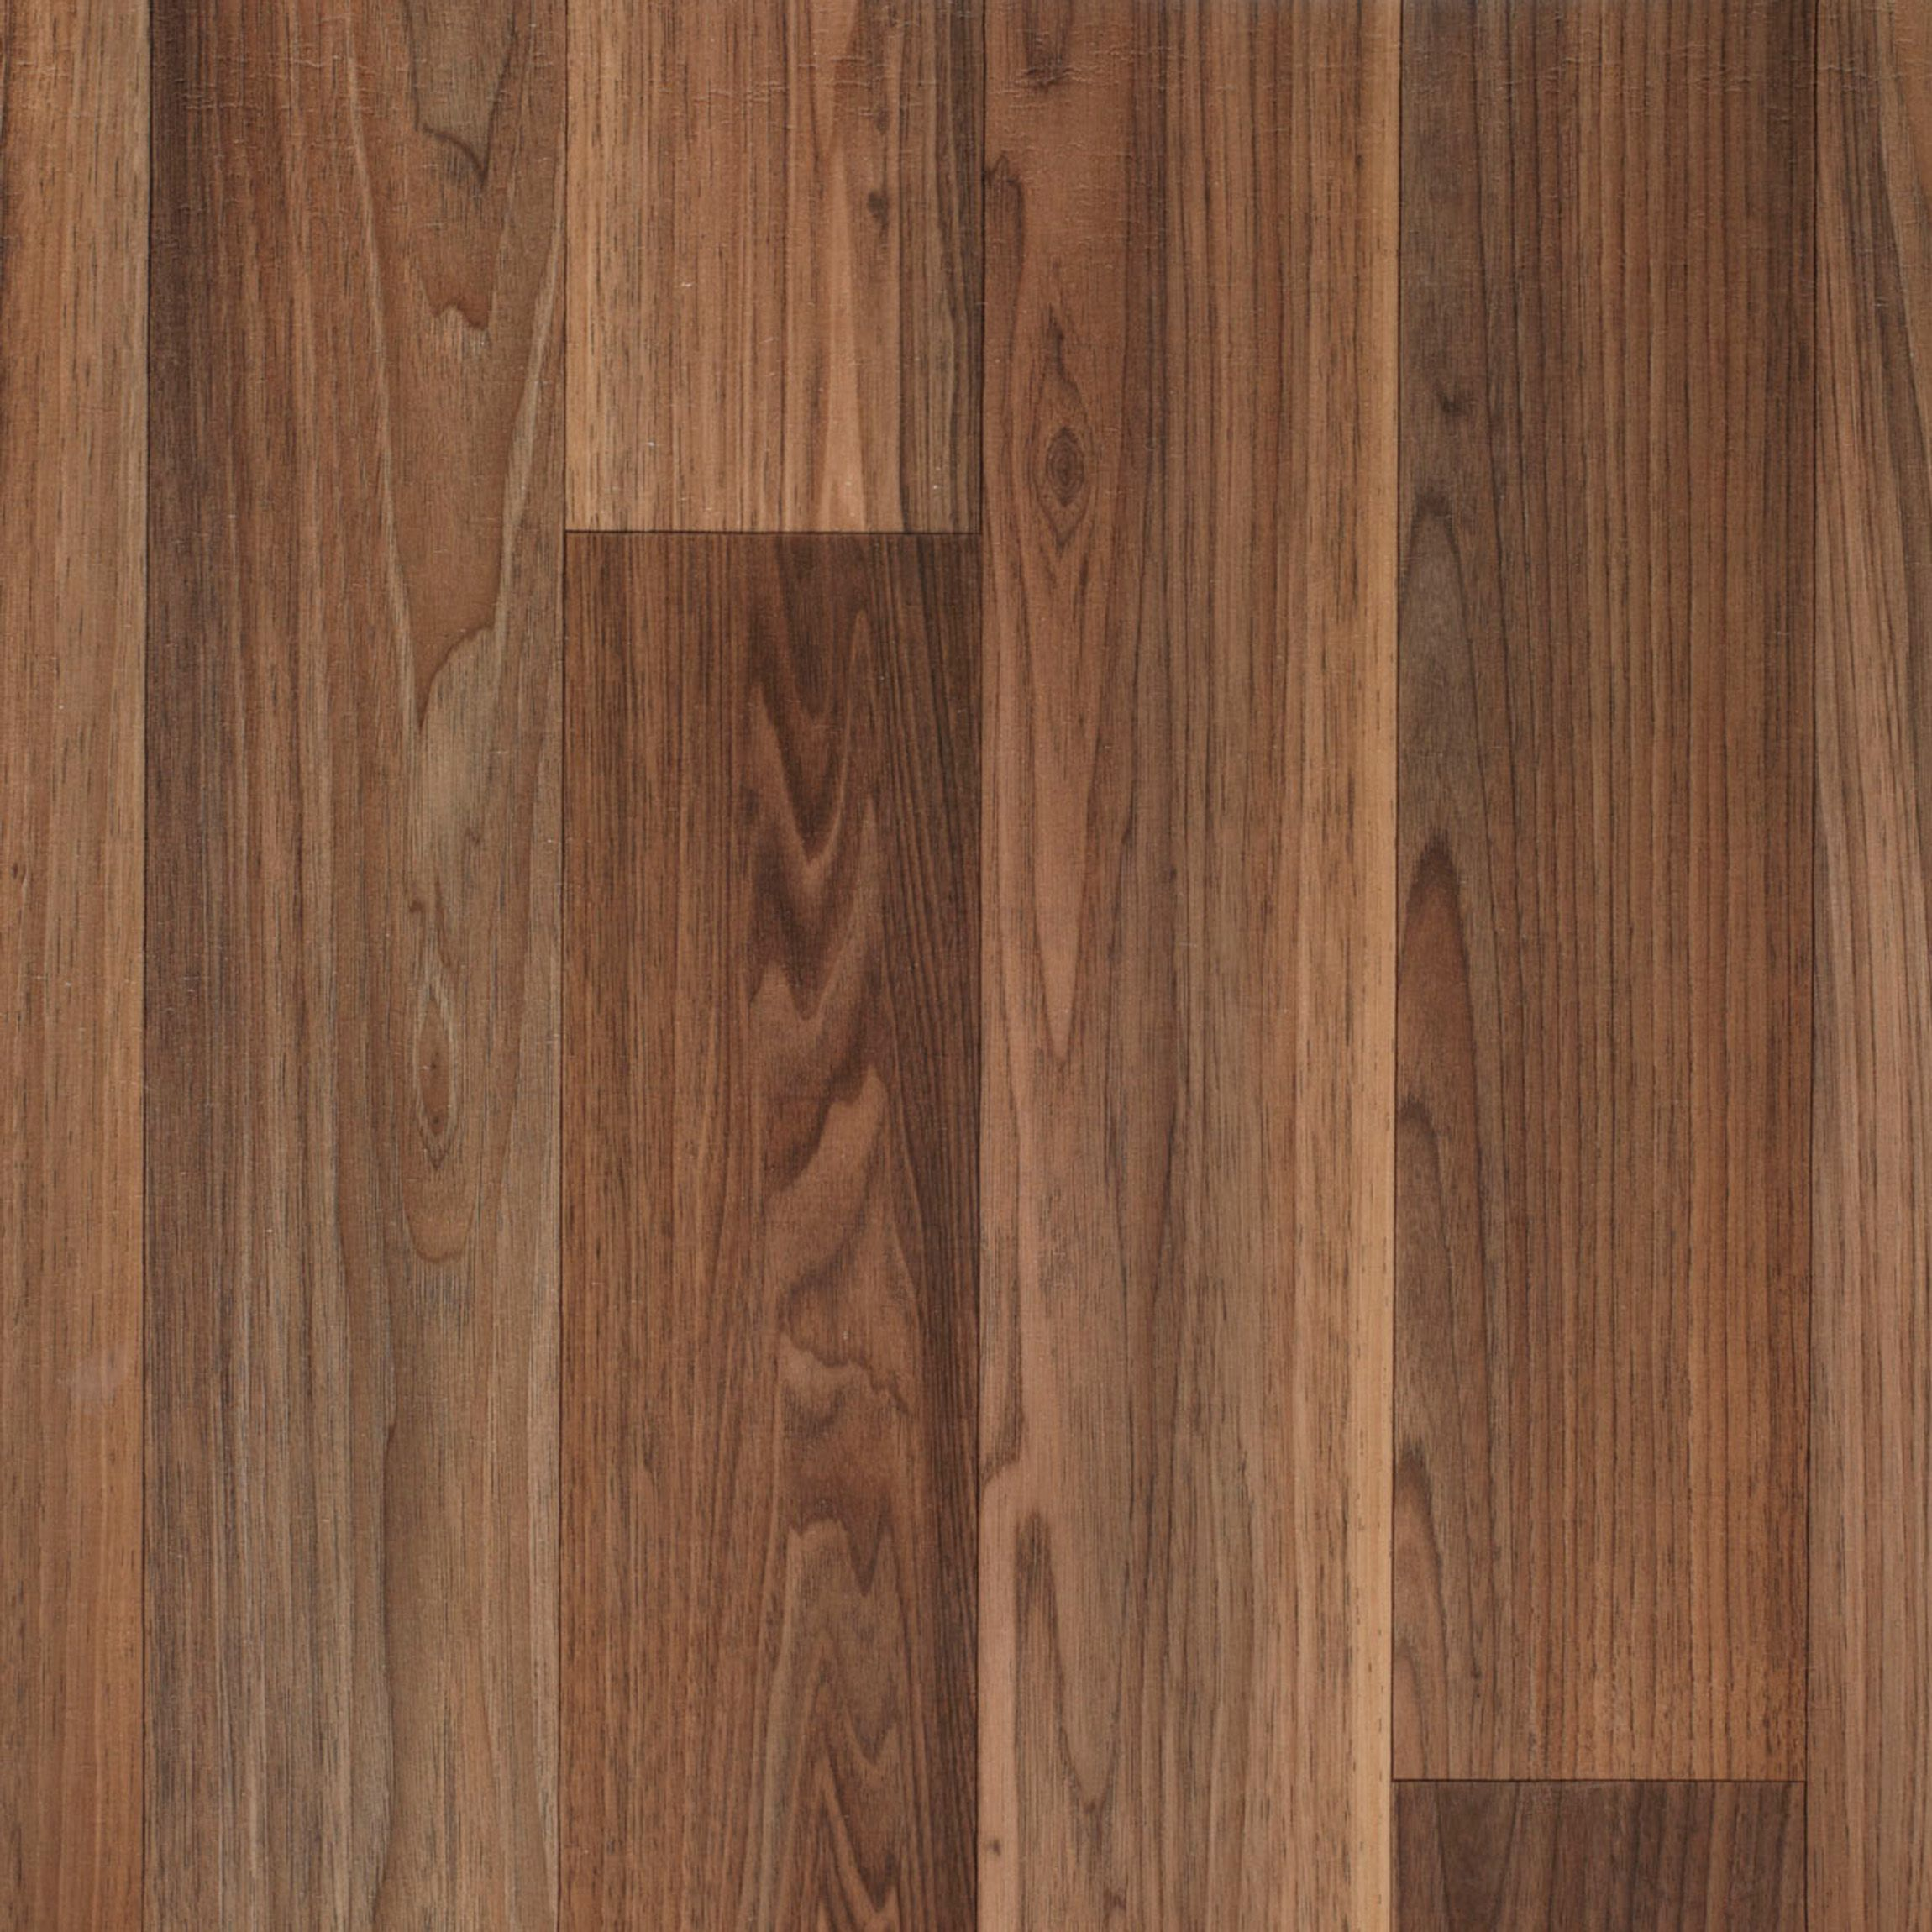 Wood look tiles bunnings 305 x 305 x 6mm natural cork tile 6 pack gerflor 3m wide selfstick medium walnut vinyl floor roll bunnings warehouse dailygadgetfo Image collections